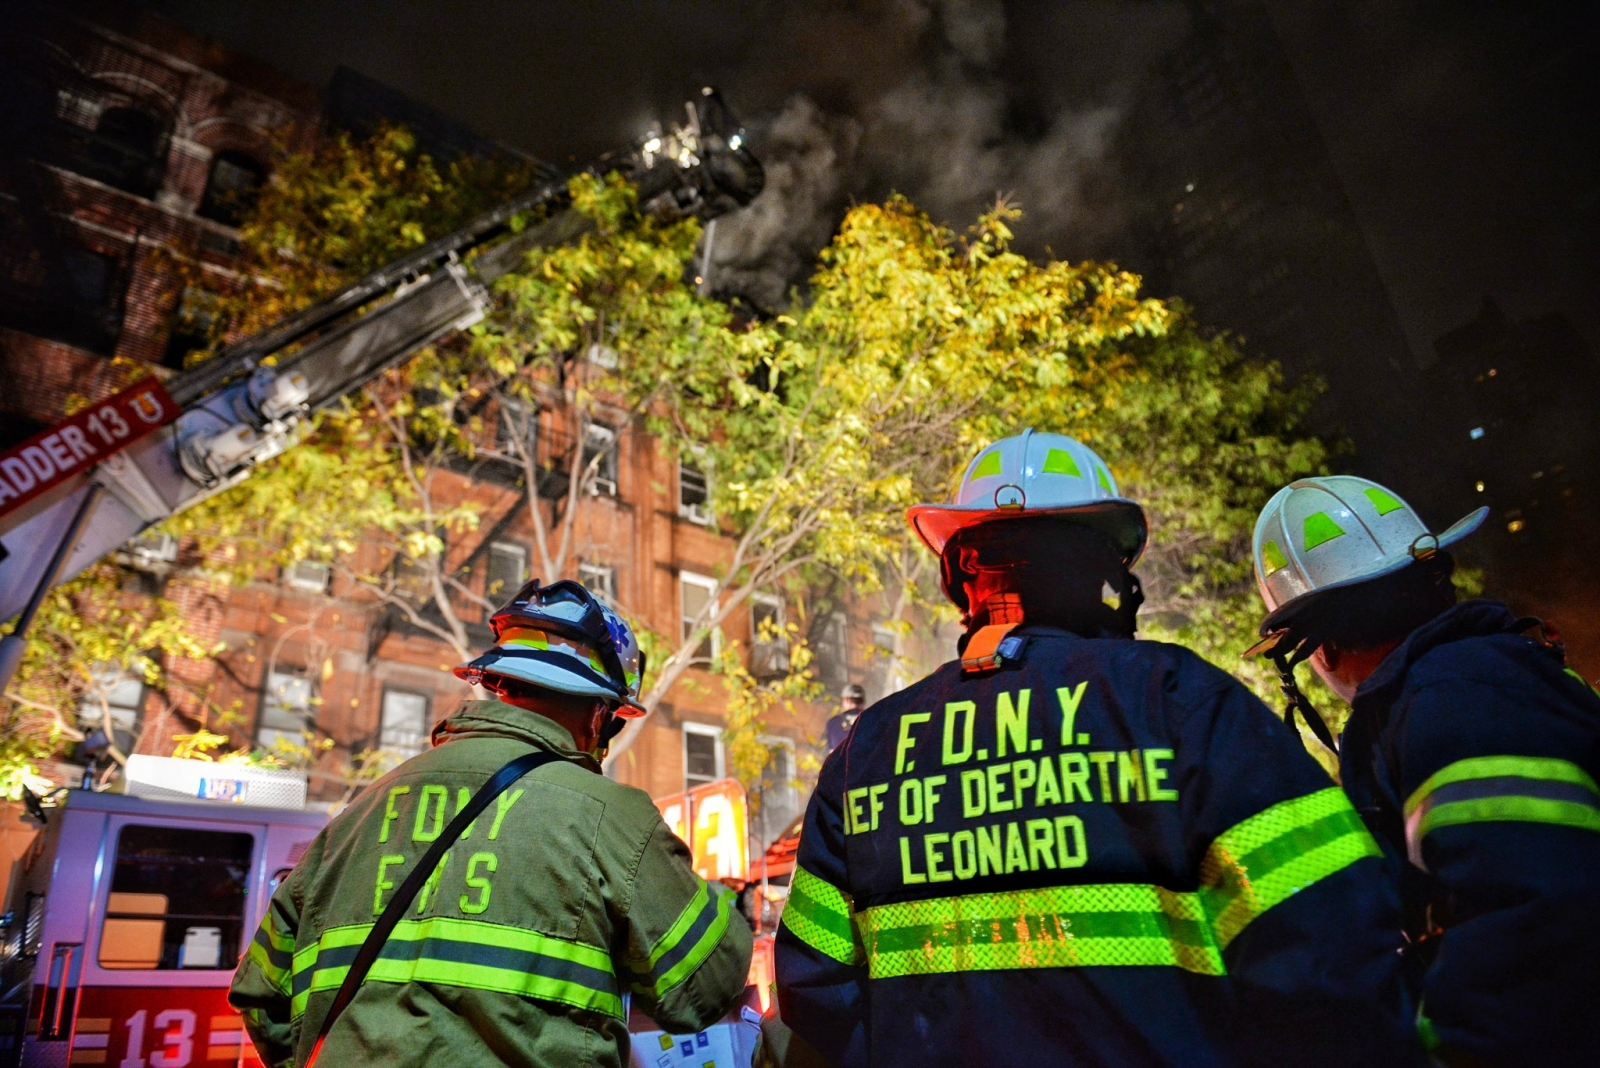 New York City firefighters tackle apartment blaze